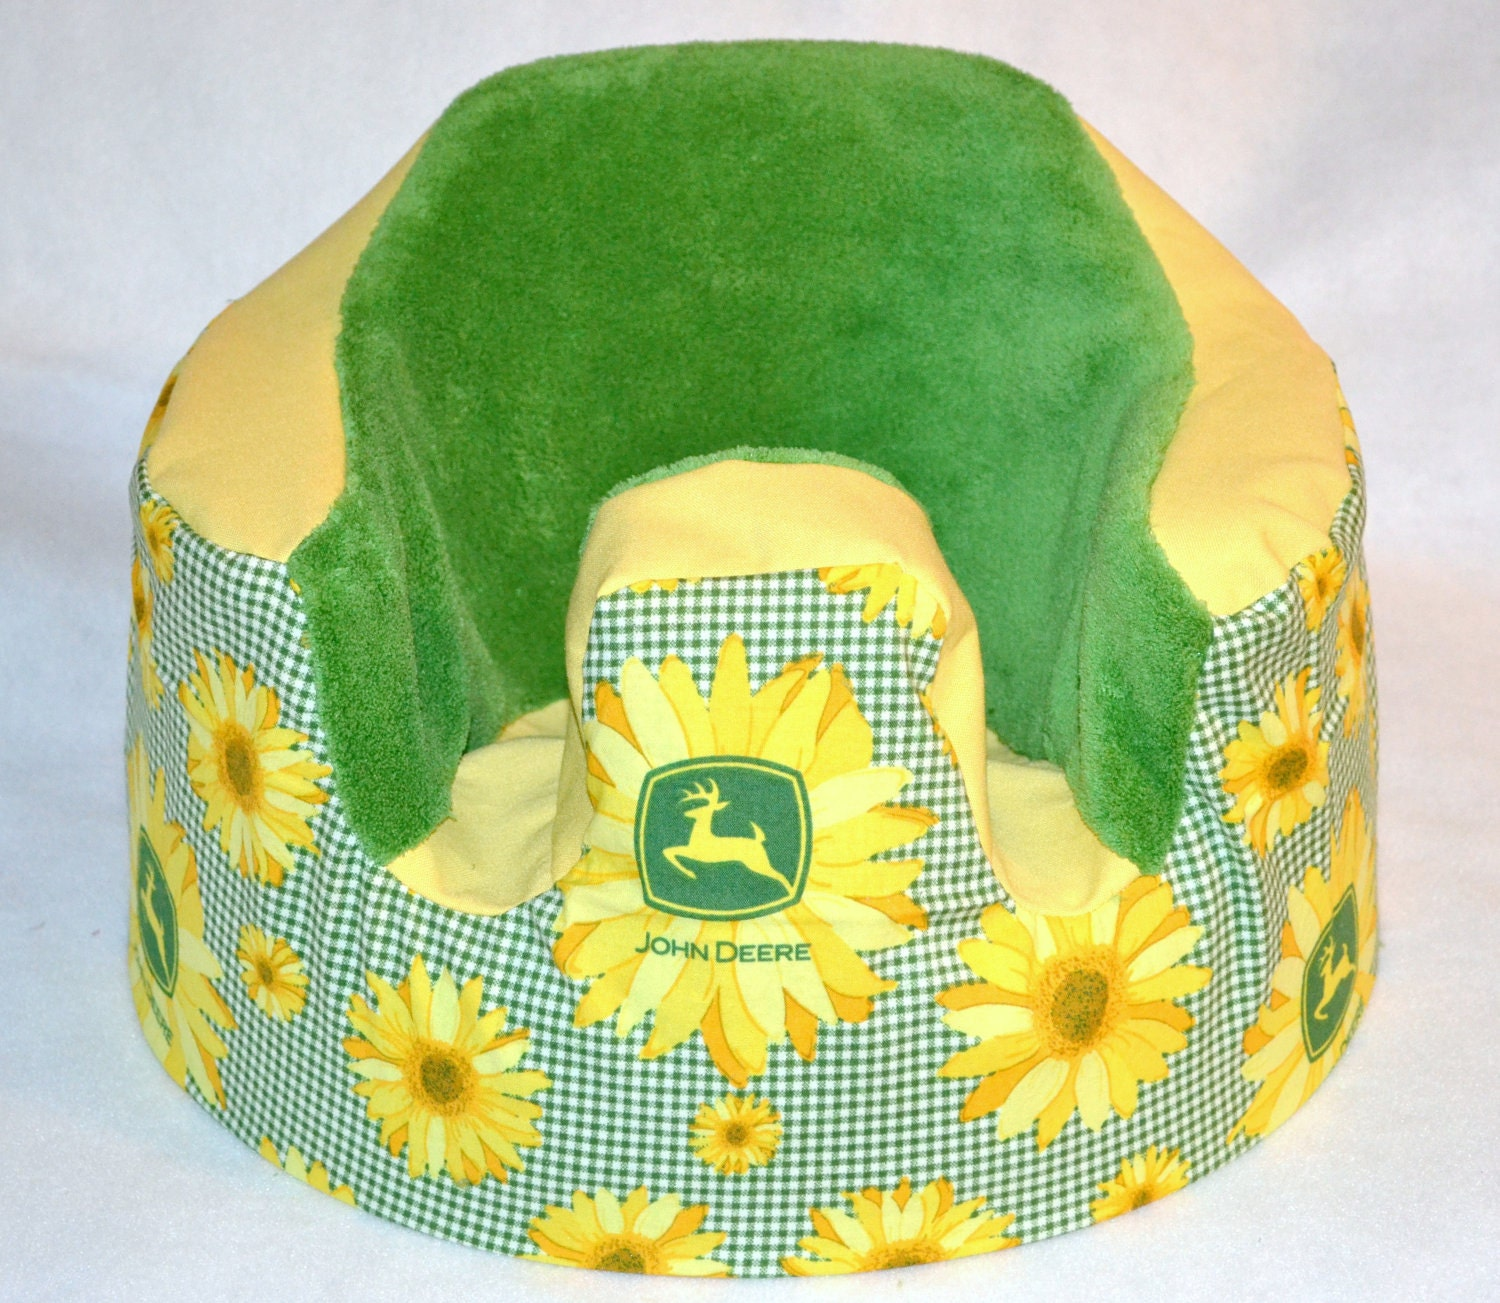 john deere sunflower baby seat cover. Black Bedroom Furniture Sets. Home Design Ideas